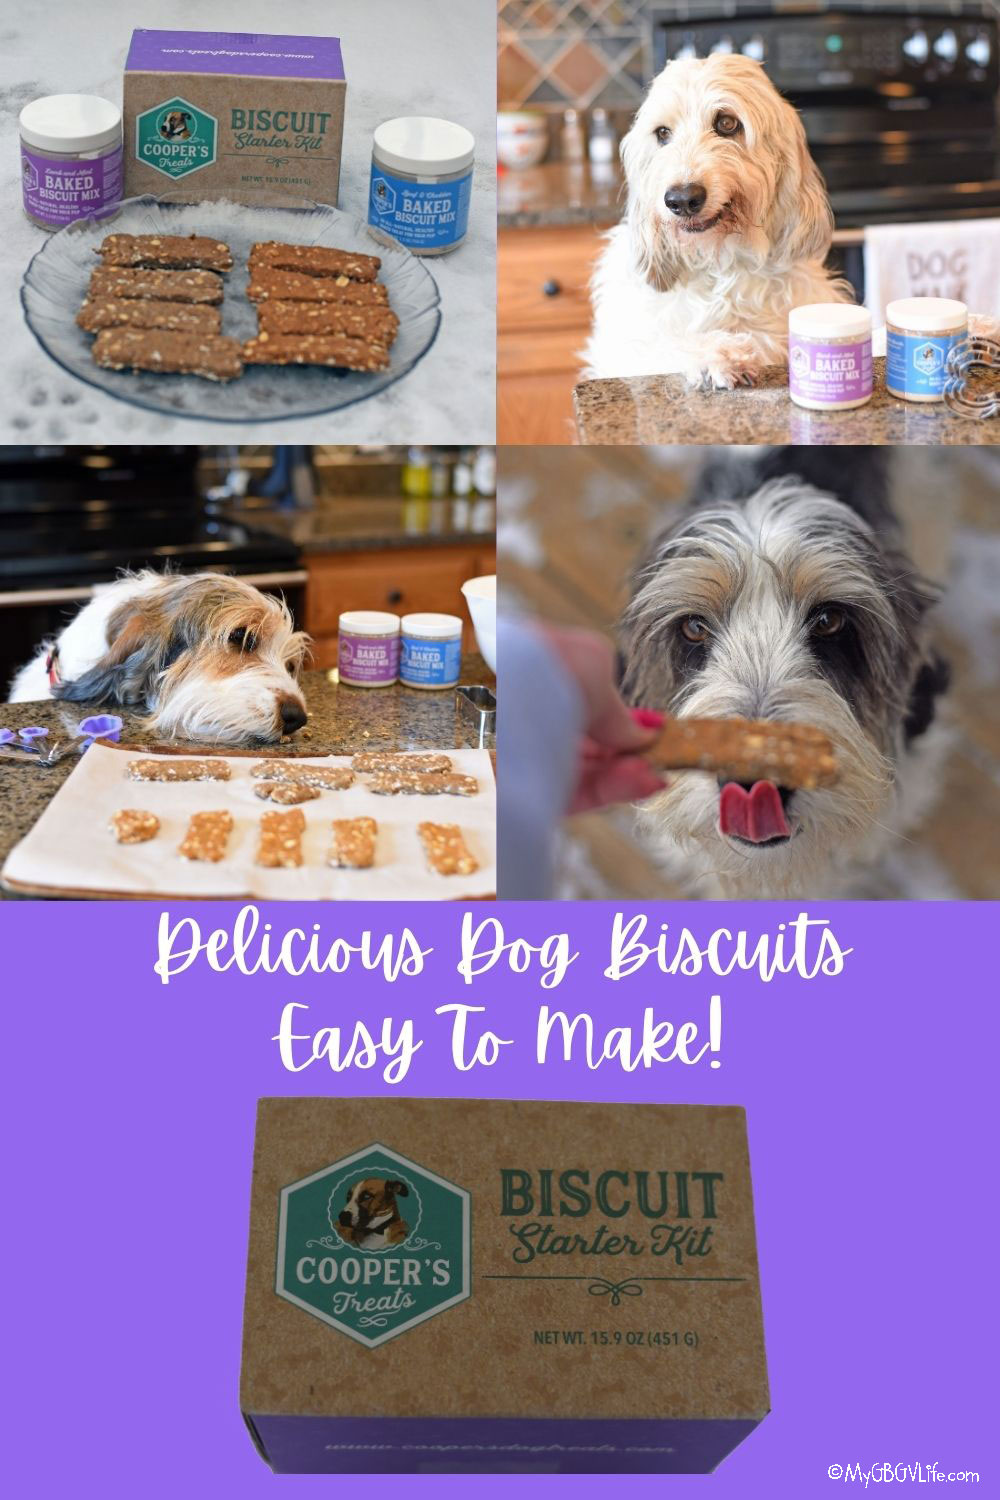 My GBGV Life All Natural, Healthy, Dog Biscuit Mix - Giveaway!